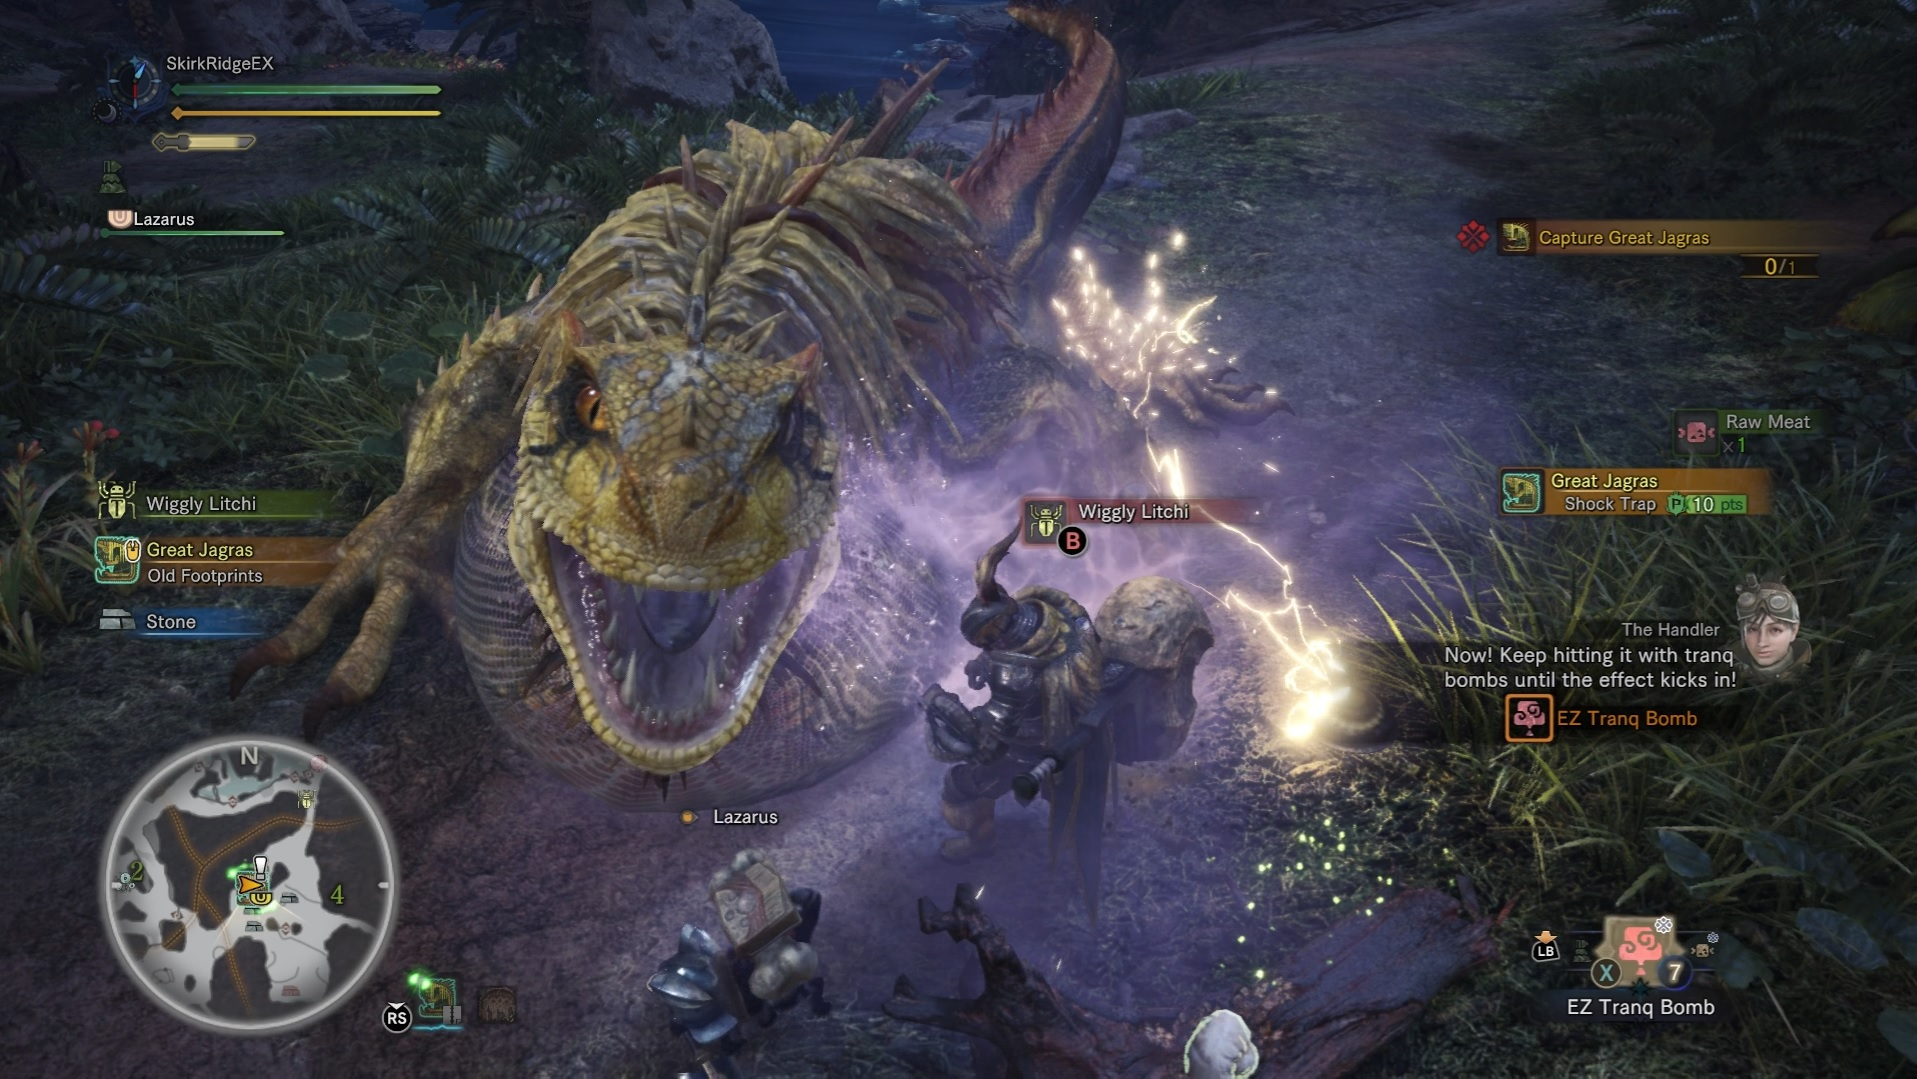 Player is using Tranq Bombs after stunning the Great Jagras with a Shock Trap.